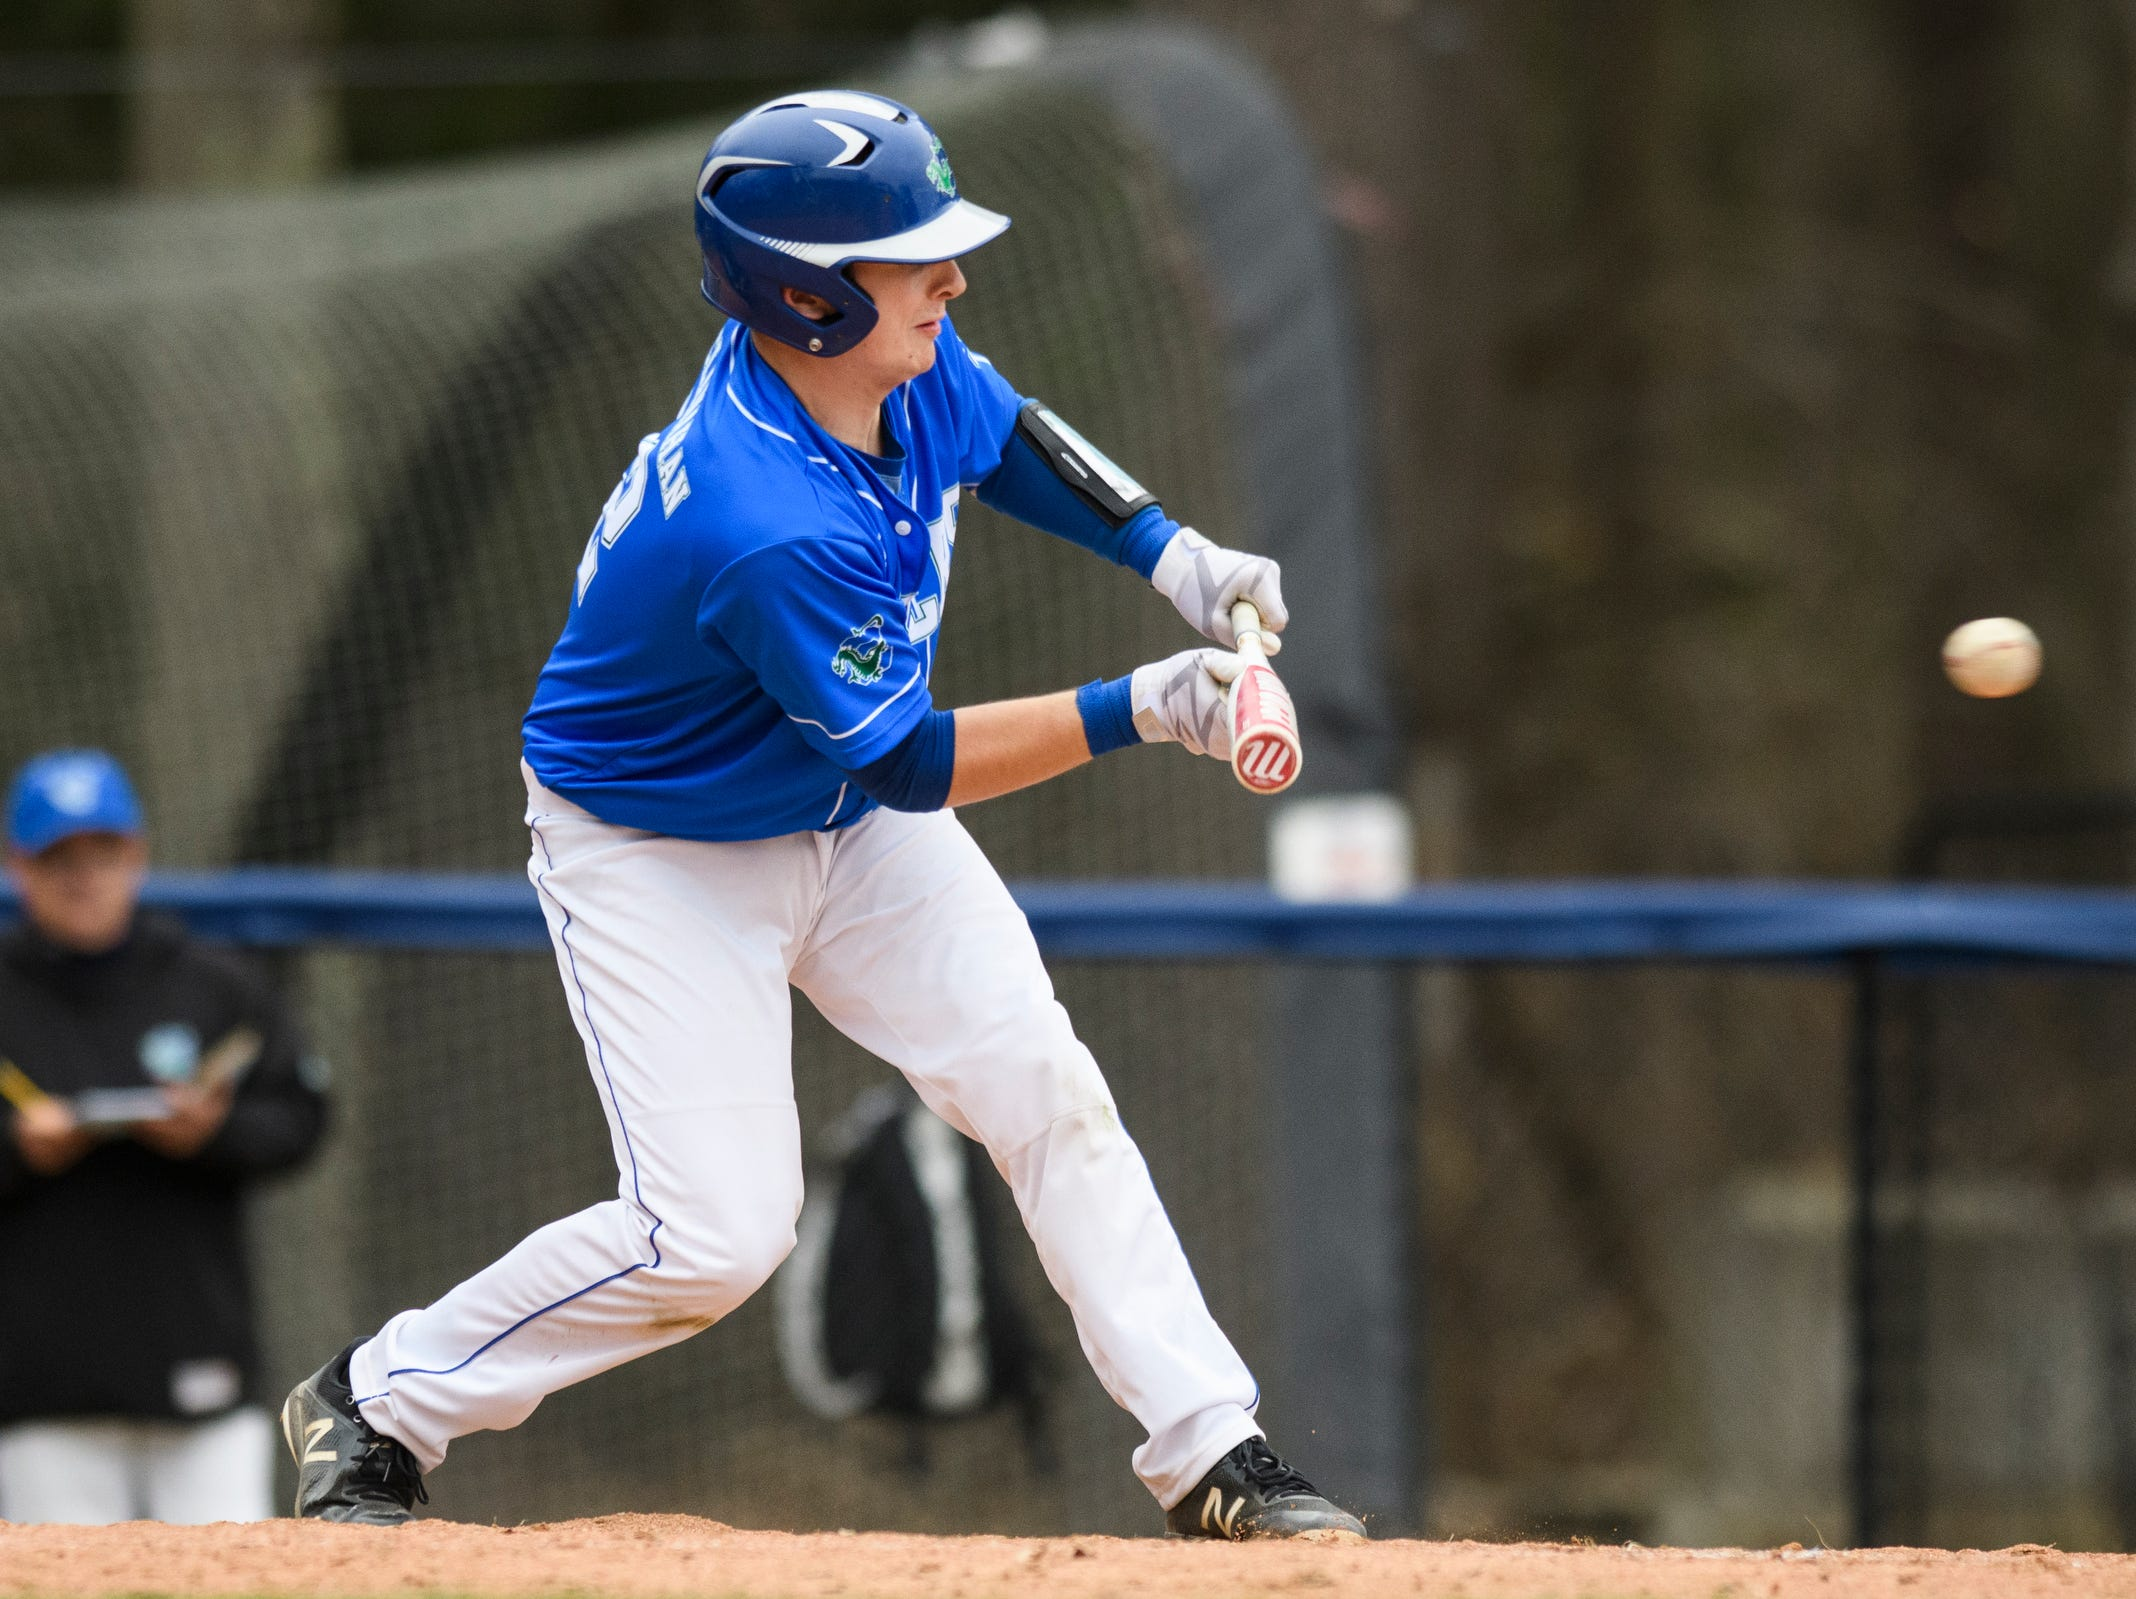 Colchester's Lucas McClanahan (22) tries to bunt the ball during the boys baseball game between the South Burlington Wolves and the Colchester Lakers at Colchester high school on Thursday afternoon April 18, 2019 in Colchester, Vermont.